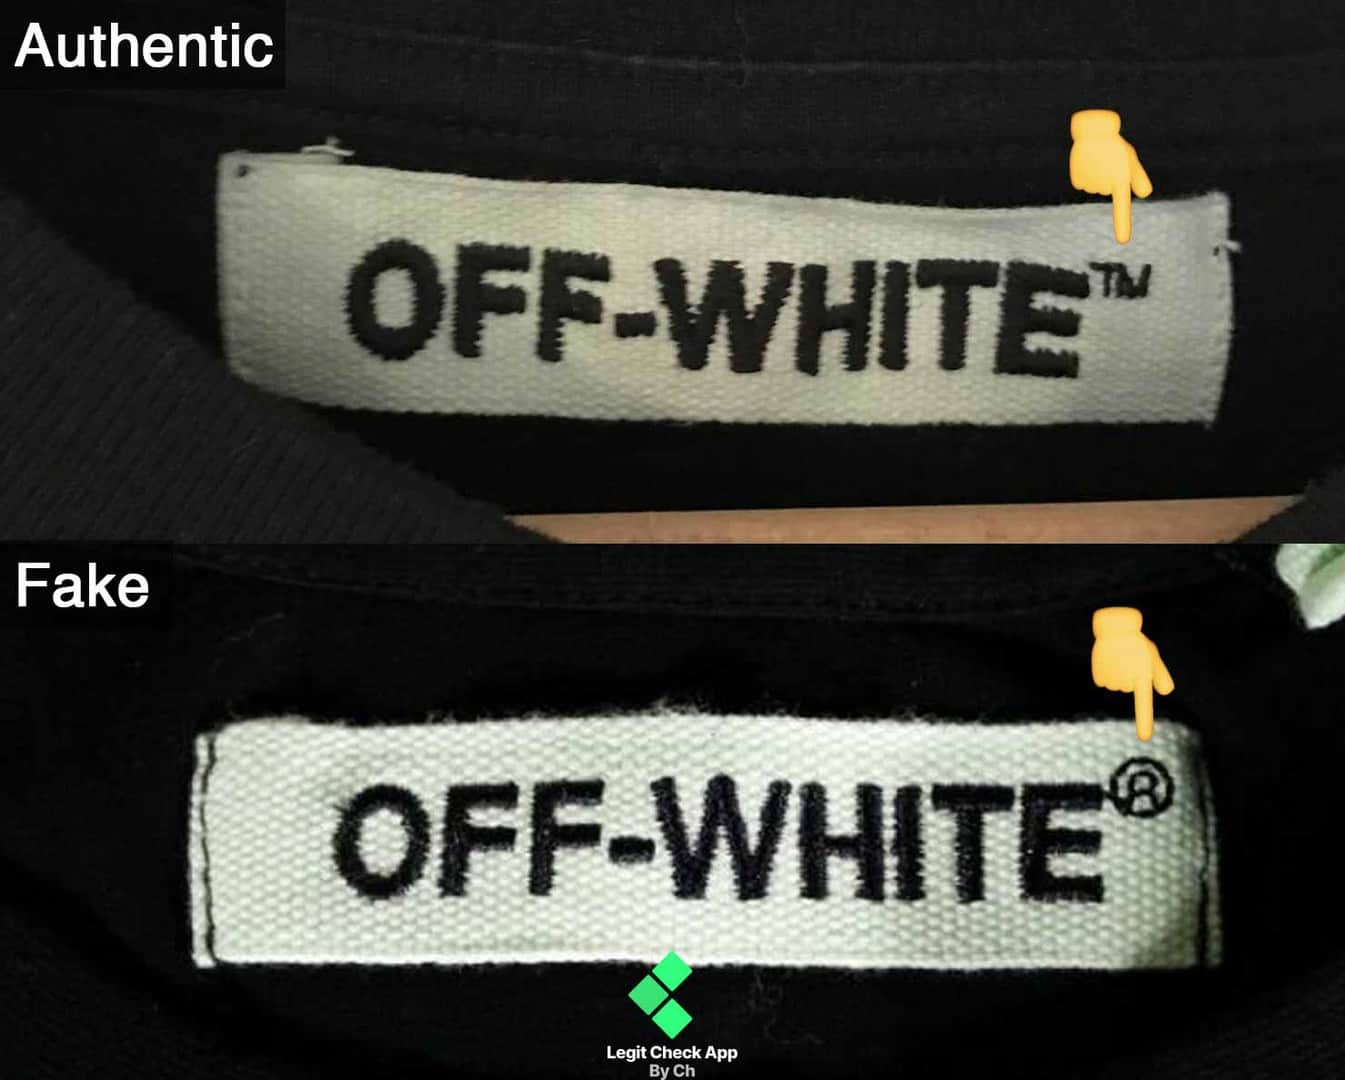 How To Spot Fake Vs Real Off White Clothing (Works For Any Off White)